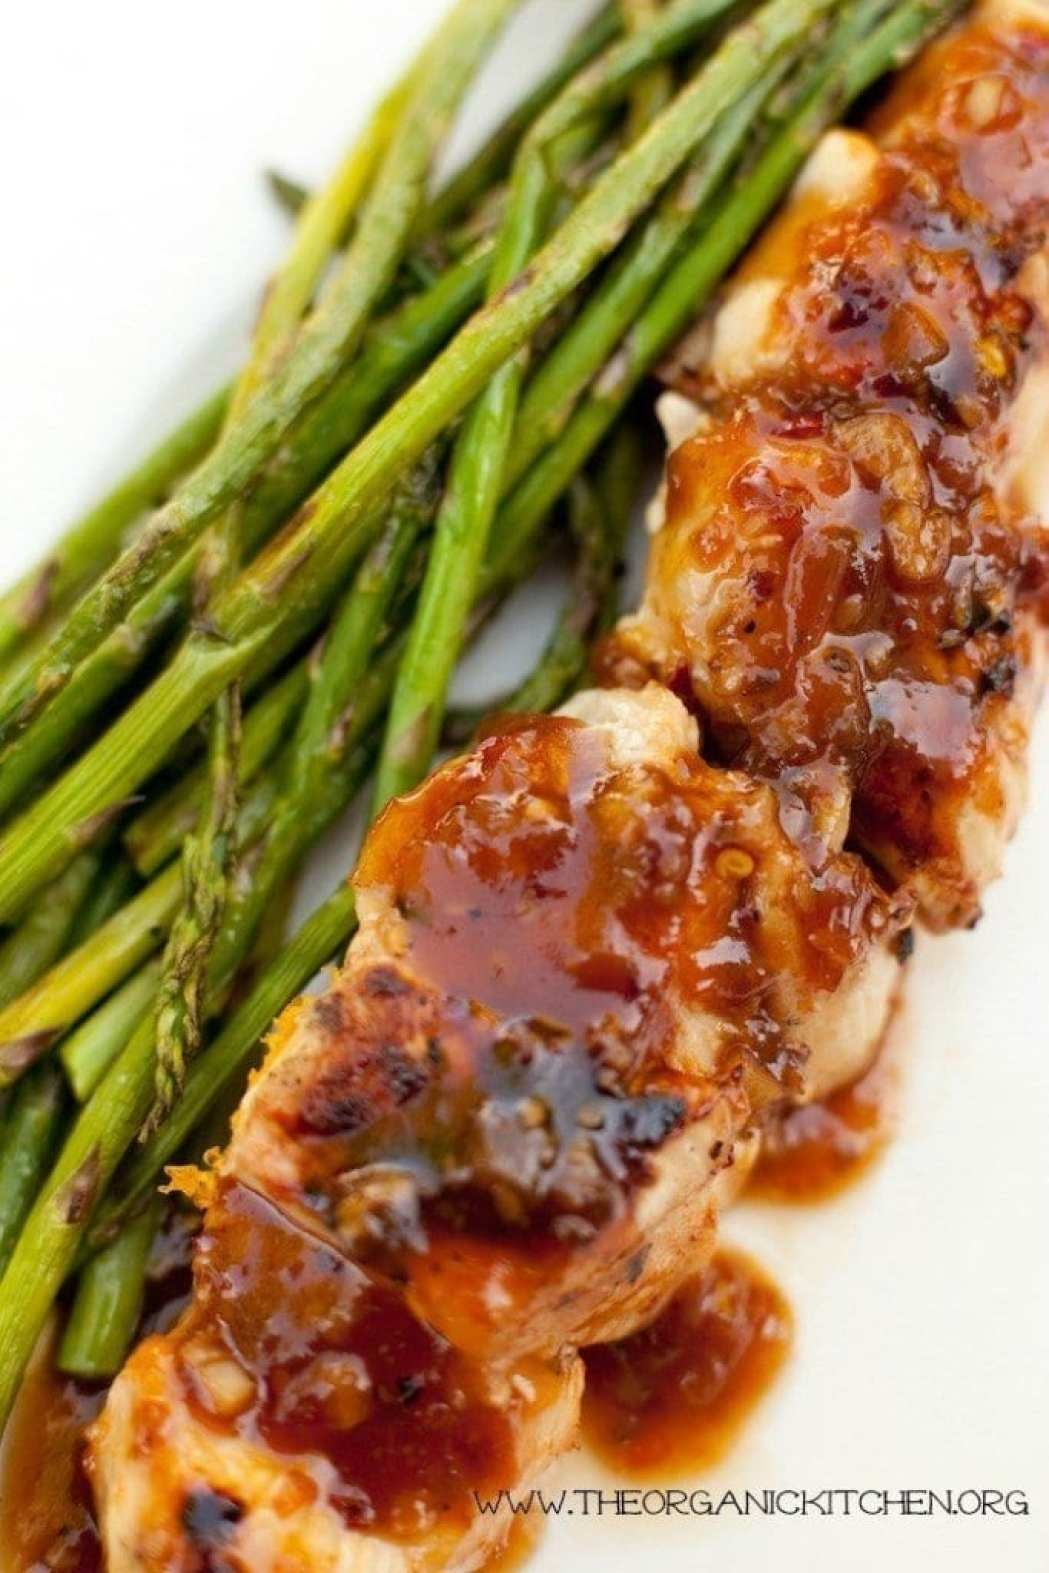 BBQ Chicken Recipes You Must Try Out This Summer